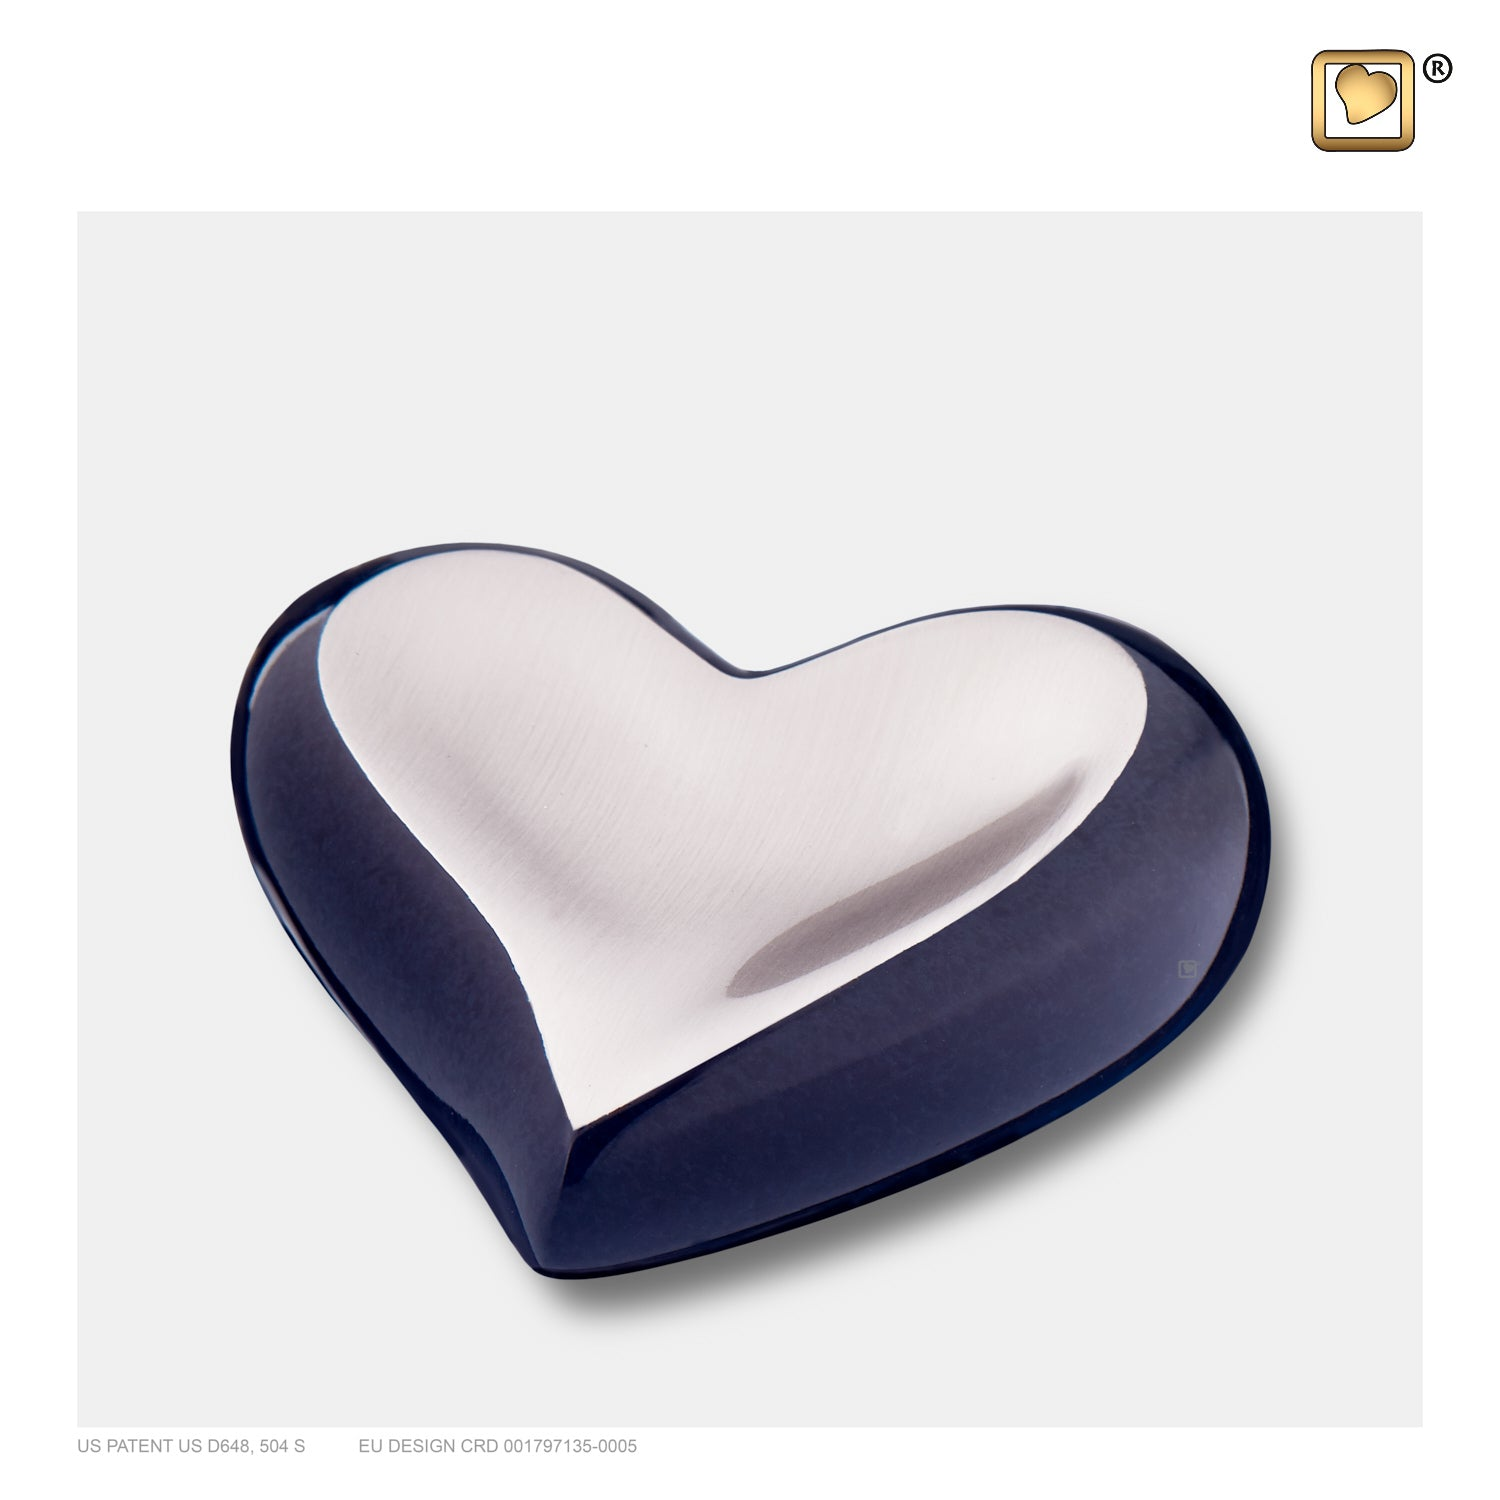 K611 HEART BRUSHED PEWTER MIDNIGHT™